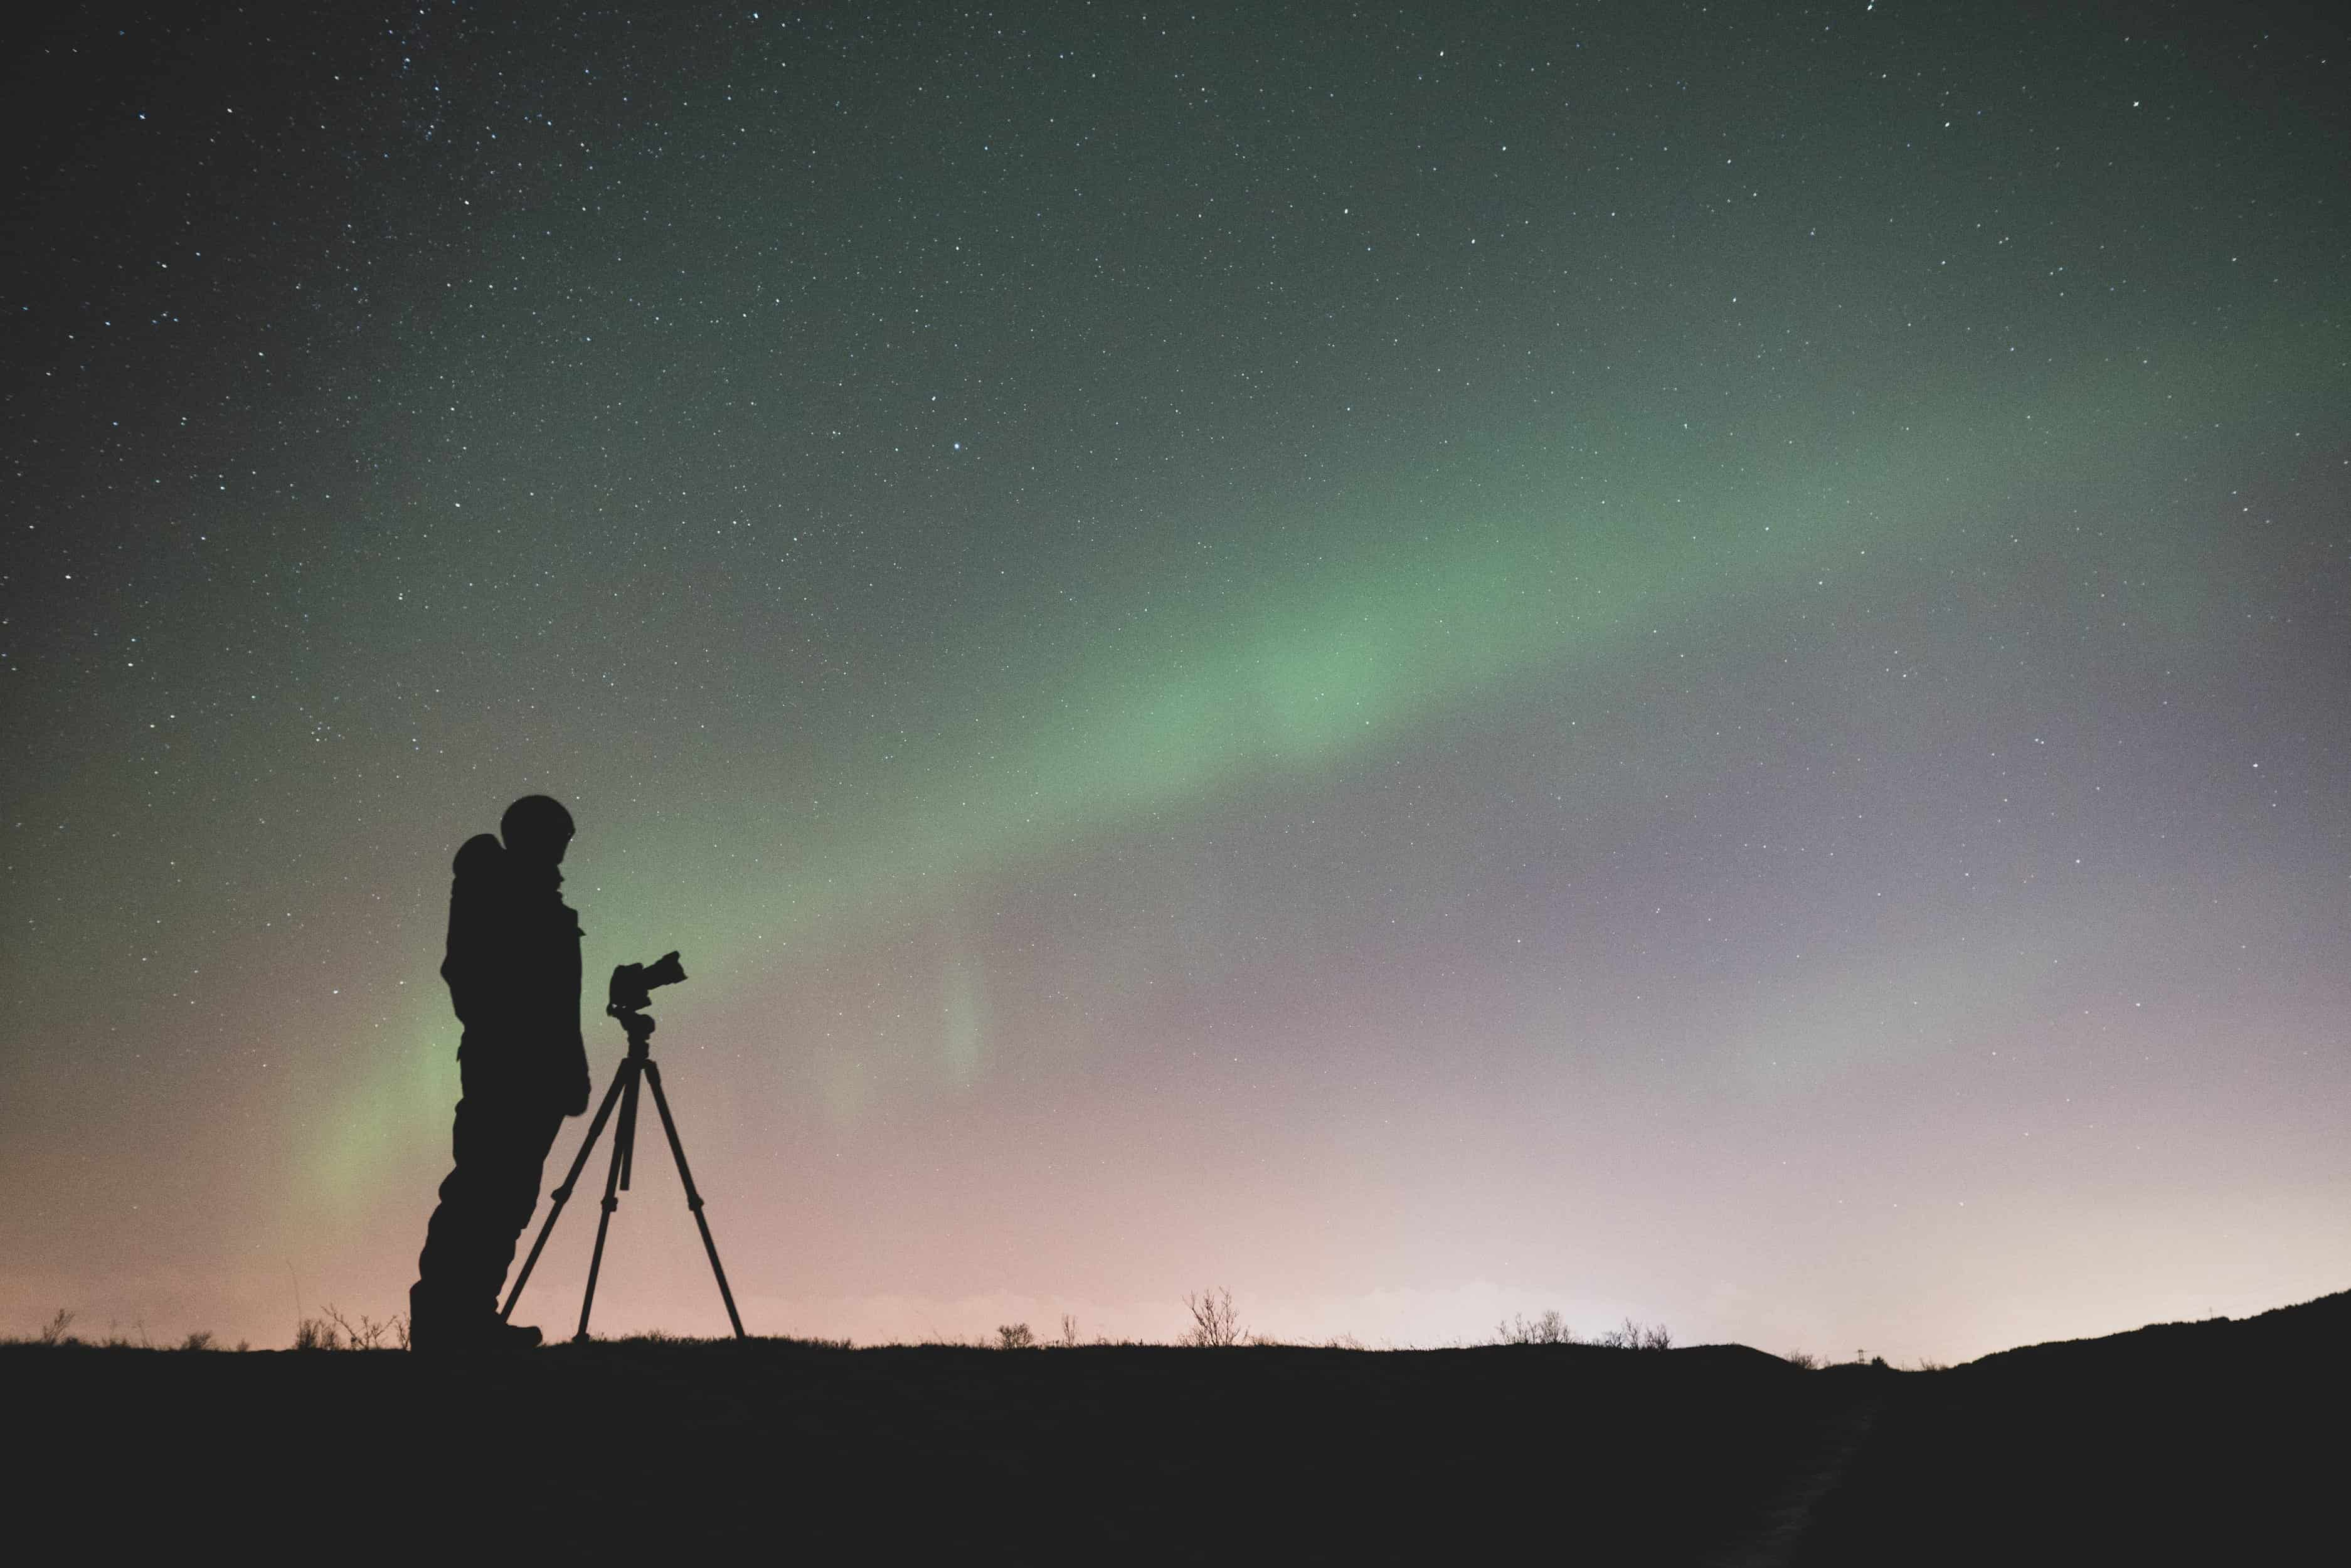 Man Photographing the Northern Lights with his Tripod in South Iceland